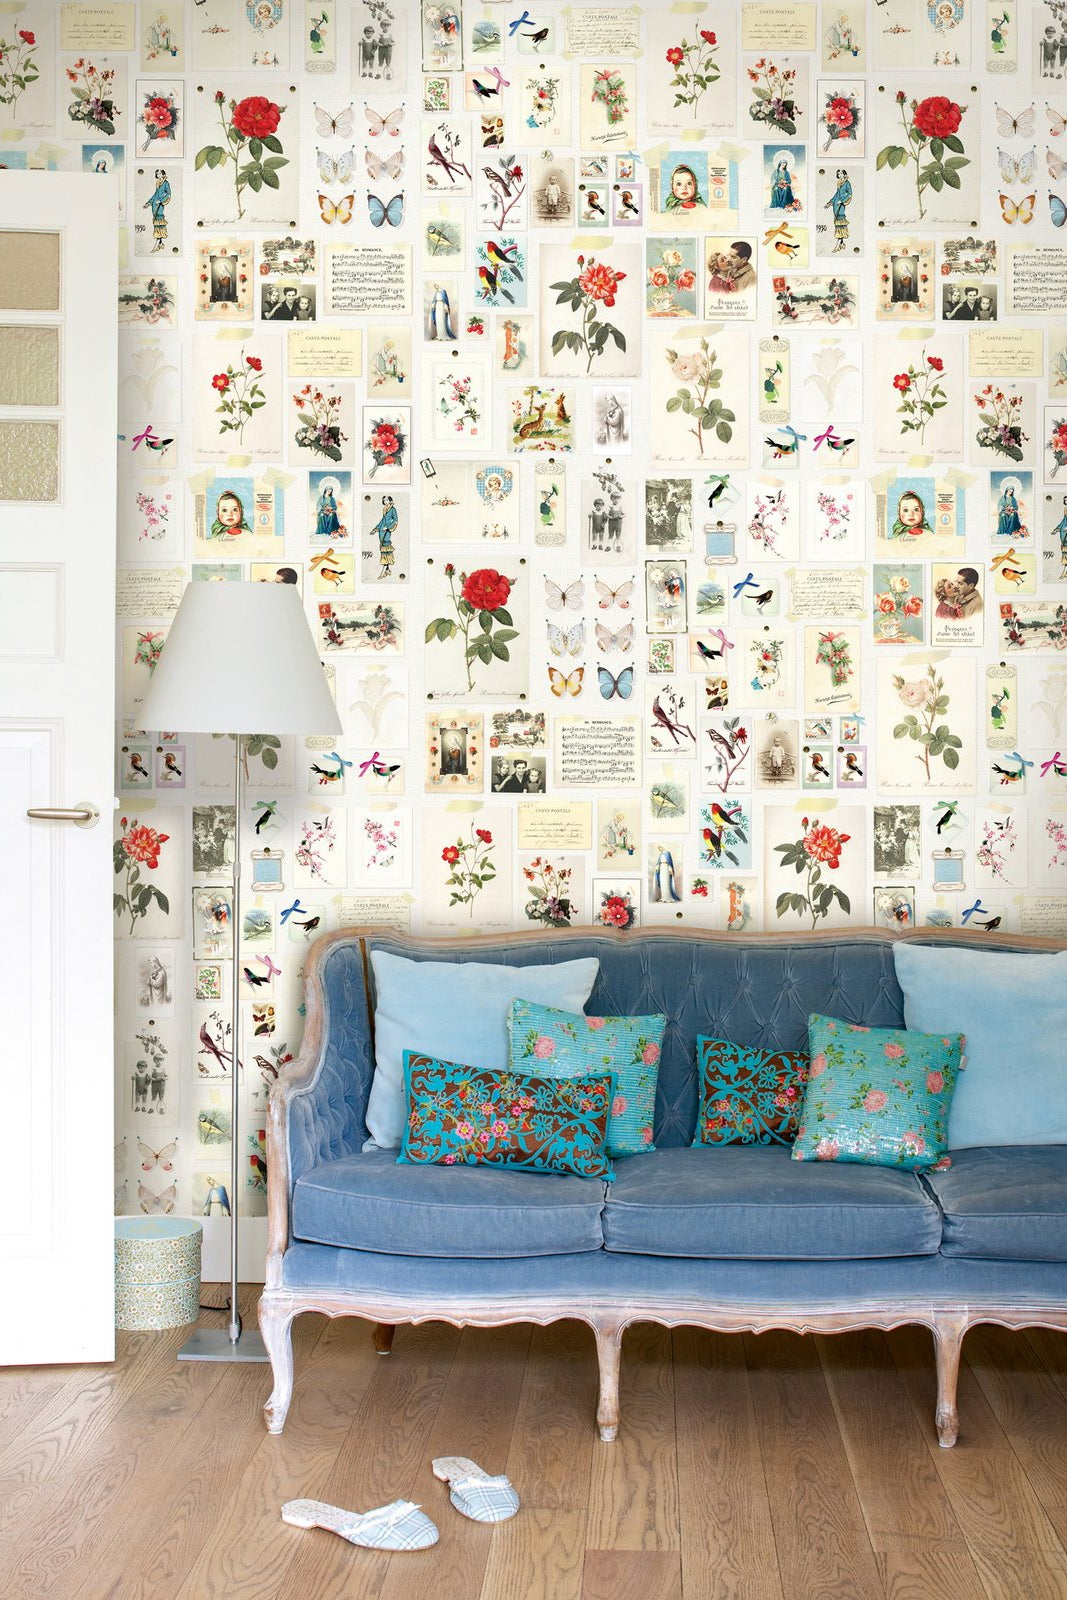 blue sofa in front of floral print wallpaper